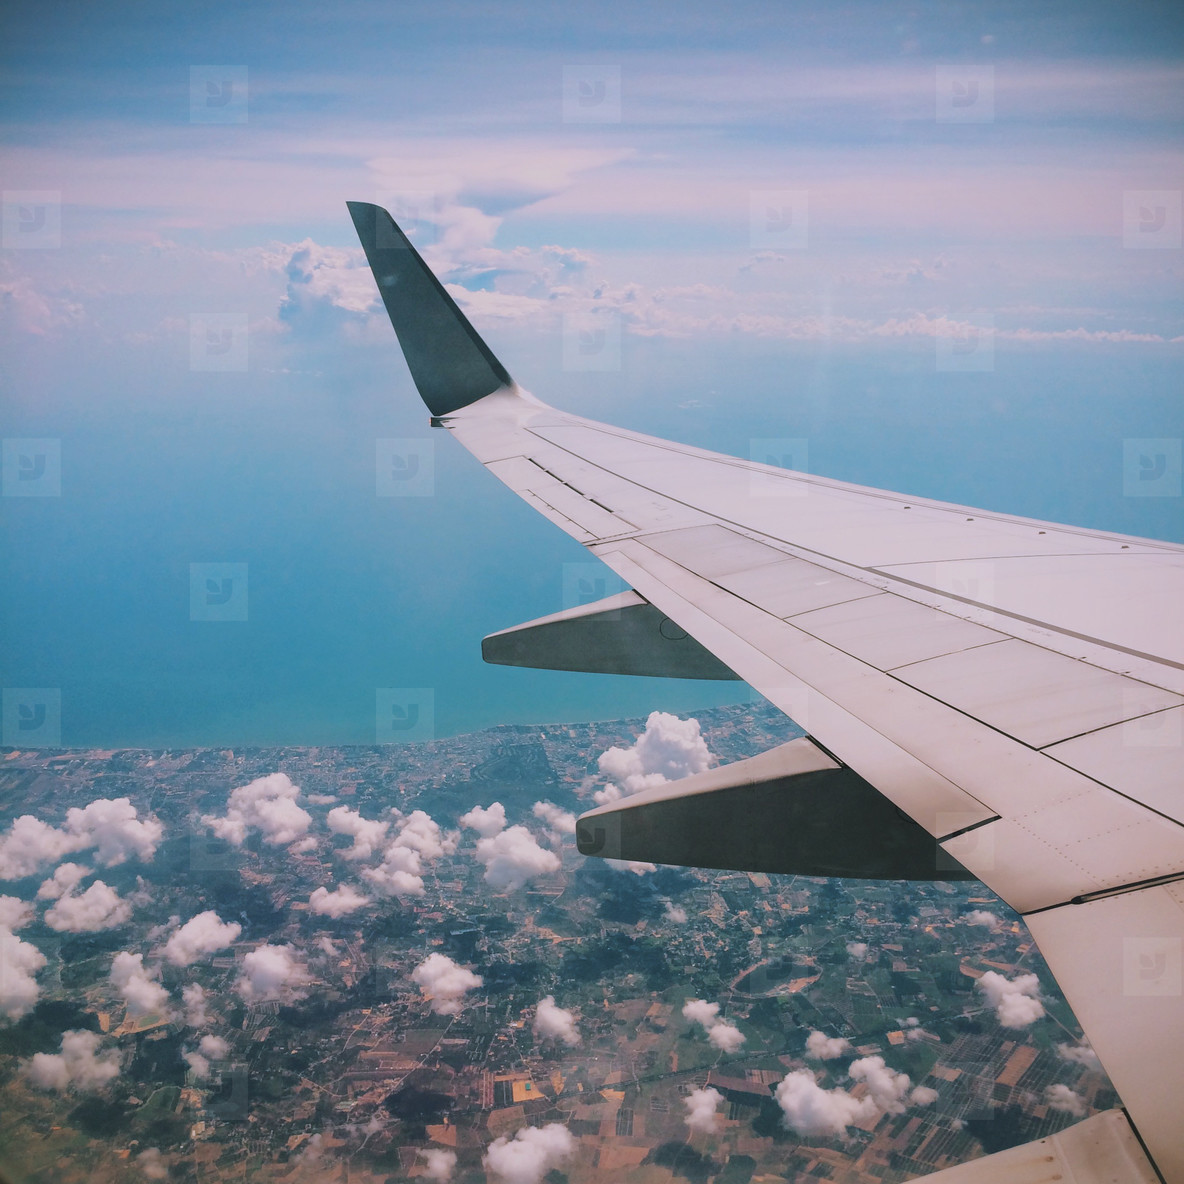 Beautiful view from an airplane